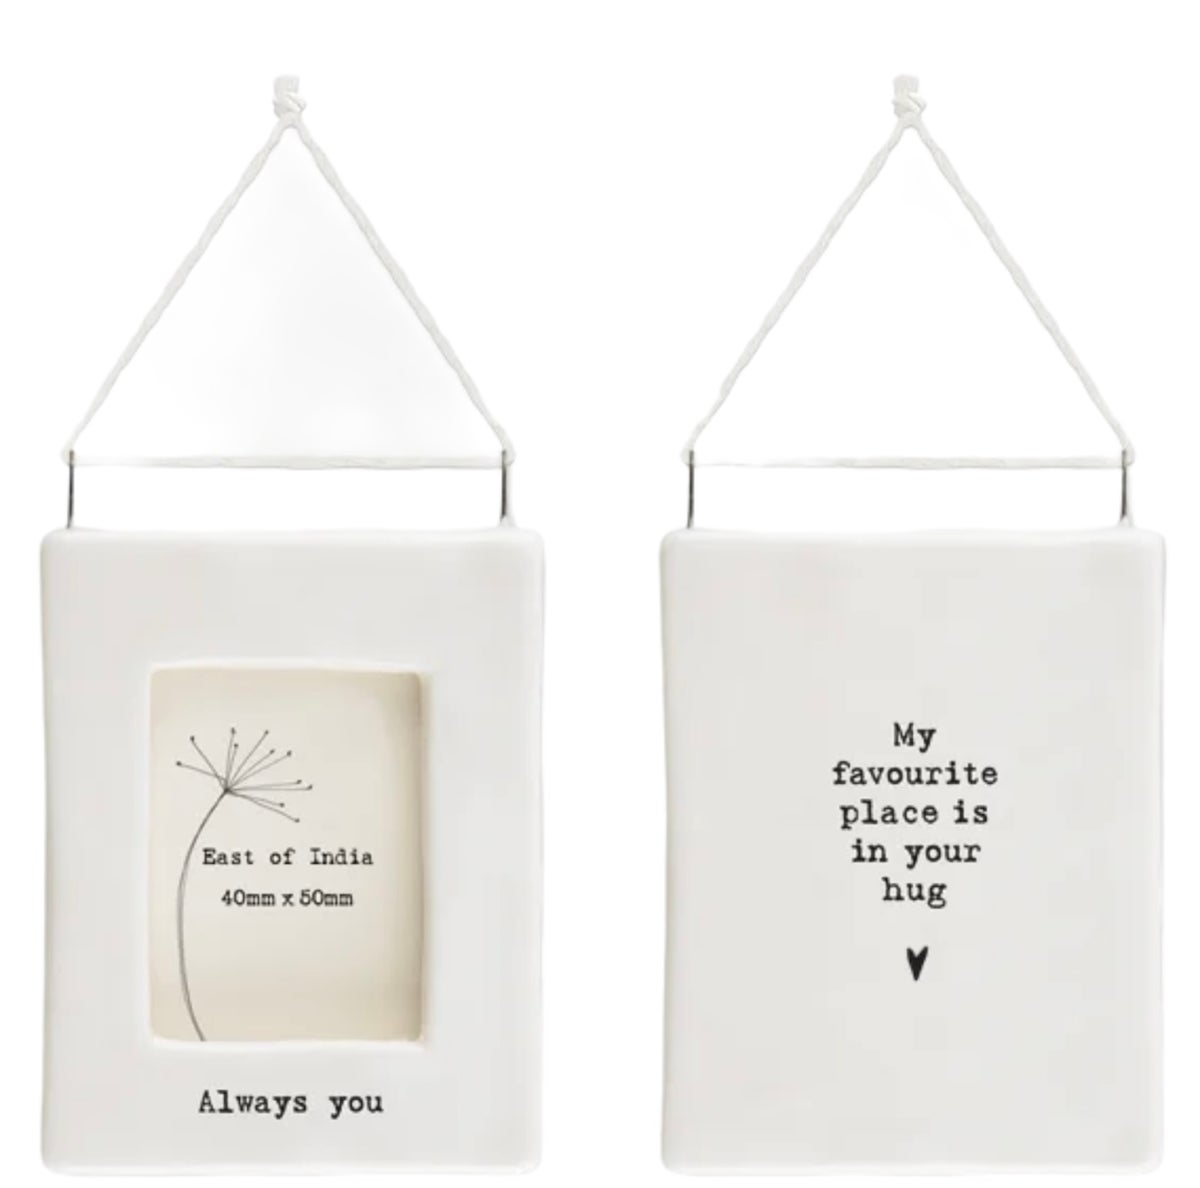 Image of East of India Mini Porcelain hanging frame - Always You